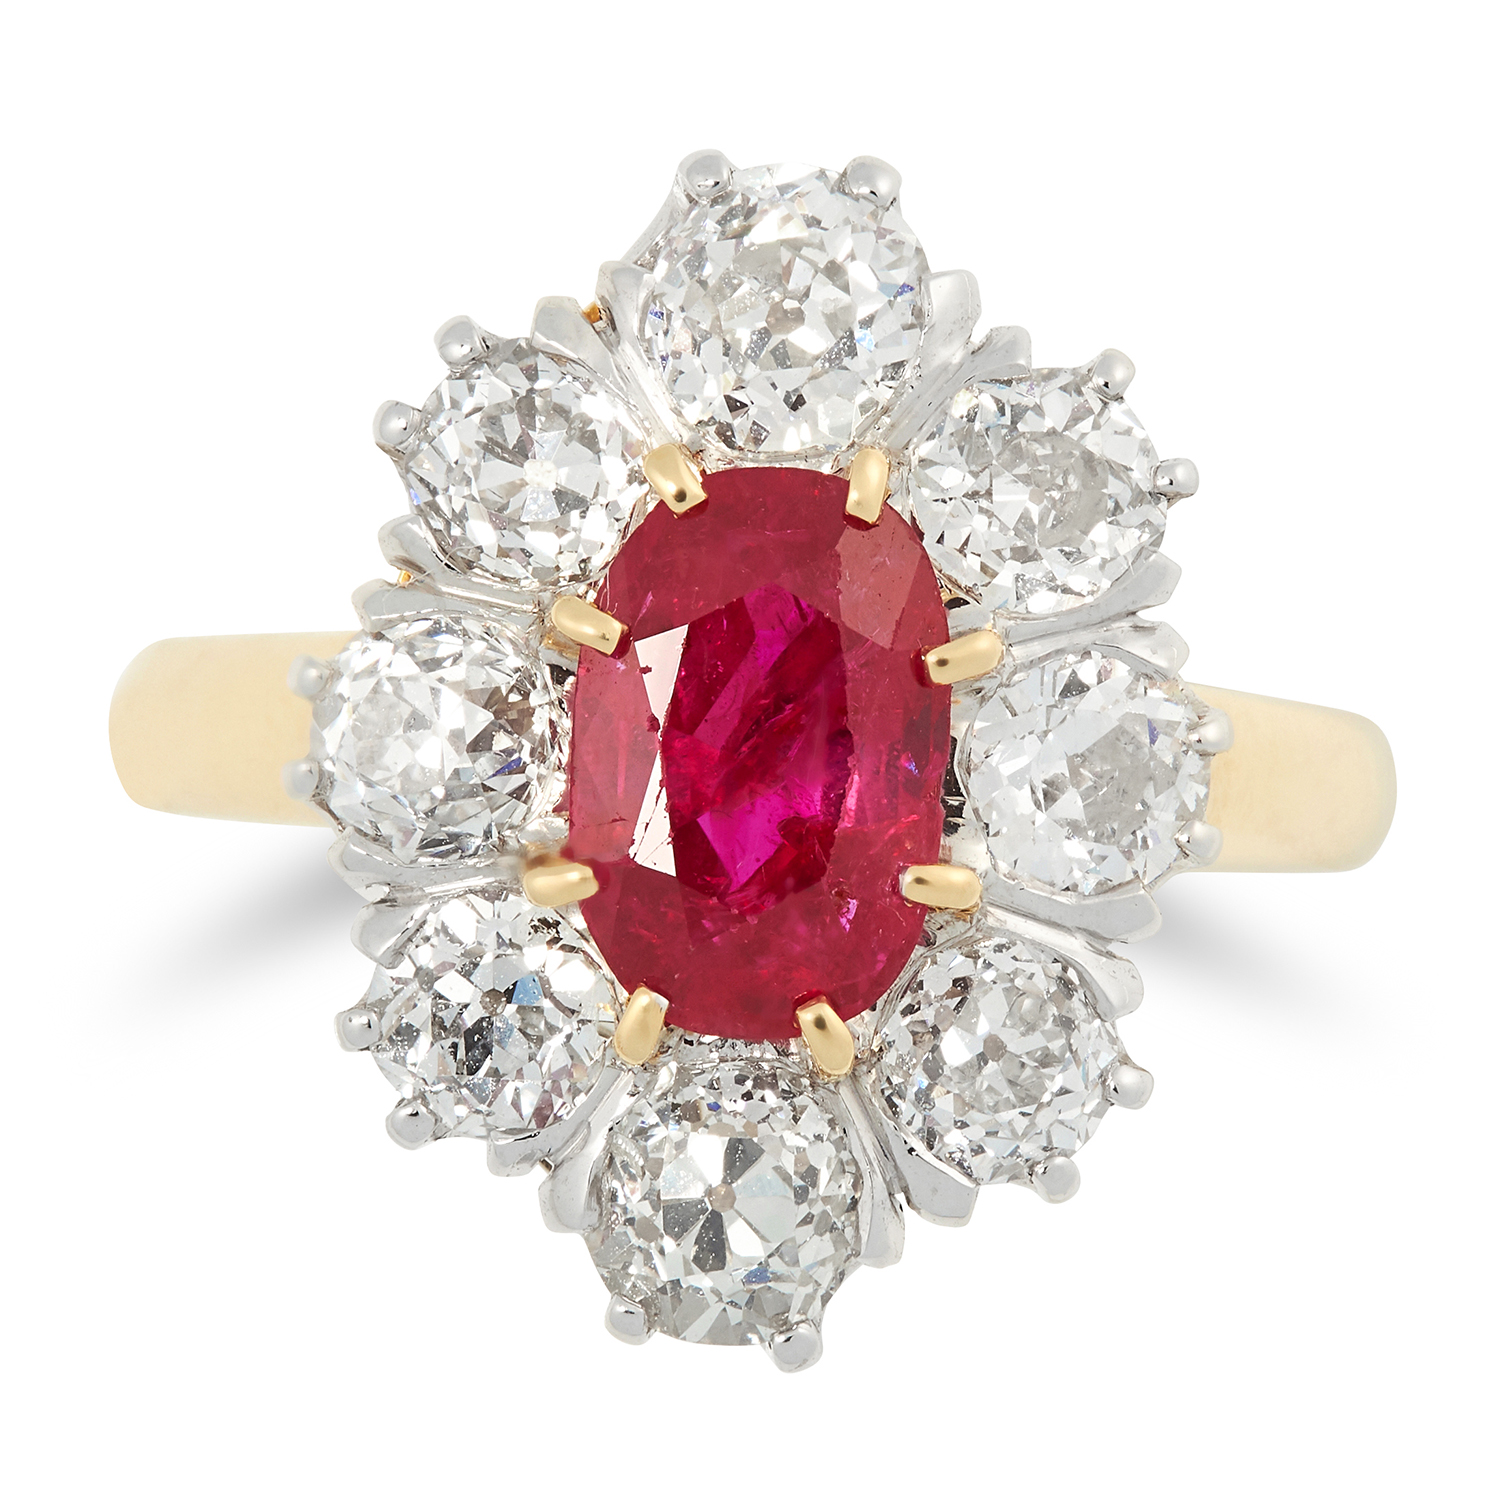 Los 12A - AN ANTIQUE BURMA NO HEAT RUBY AND DIAMOND RING set with an oval cut ruby of approximately 3.0 carats